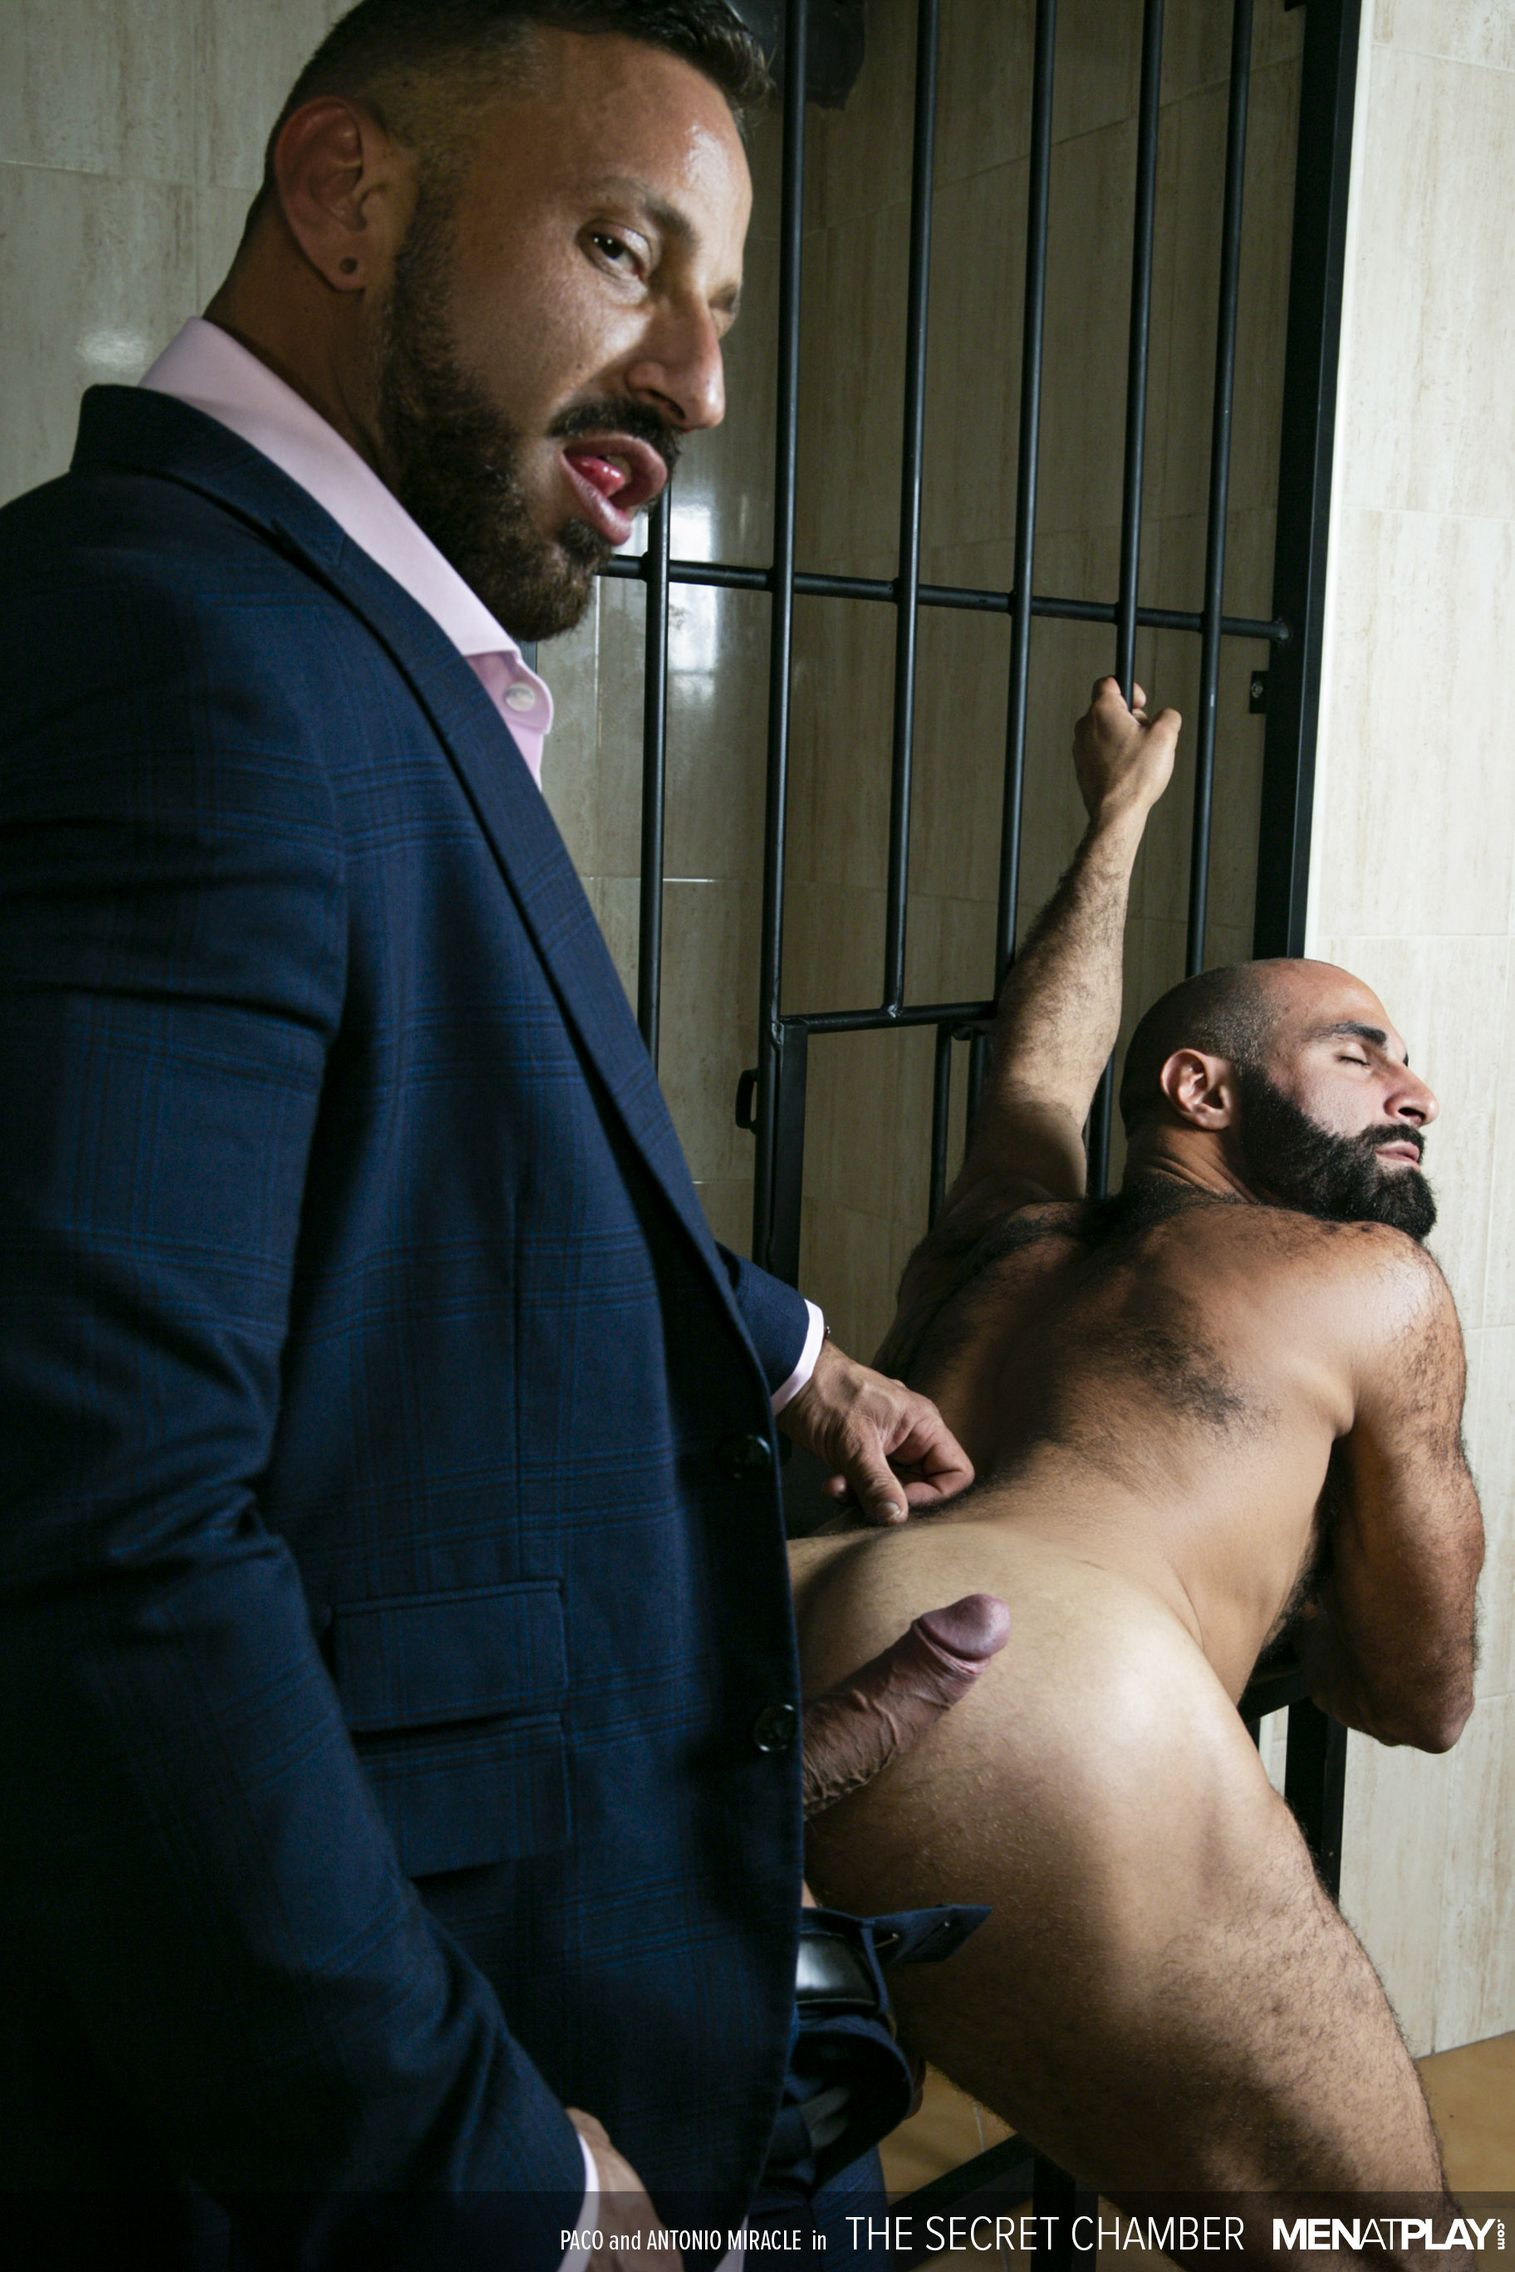 Antonio Miracle fuck Paco gay hot daddy dude men porn Secret Chamber